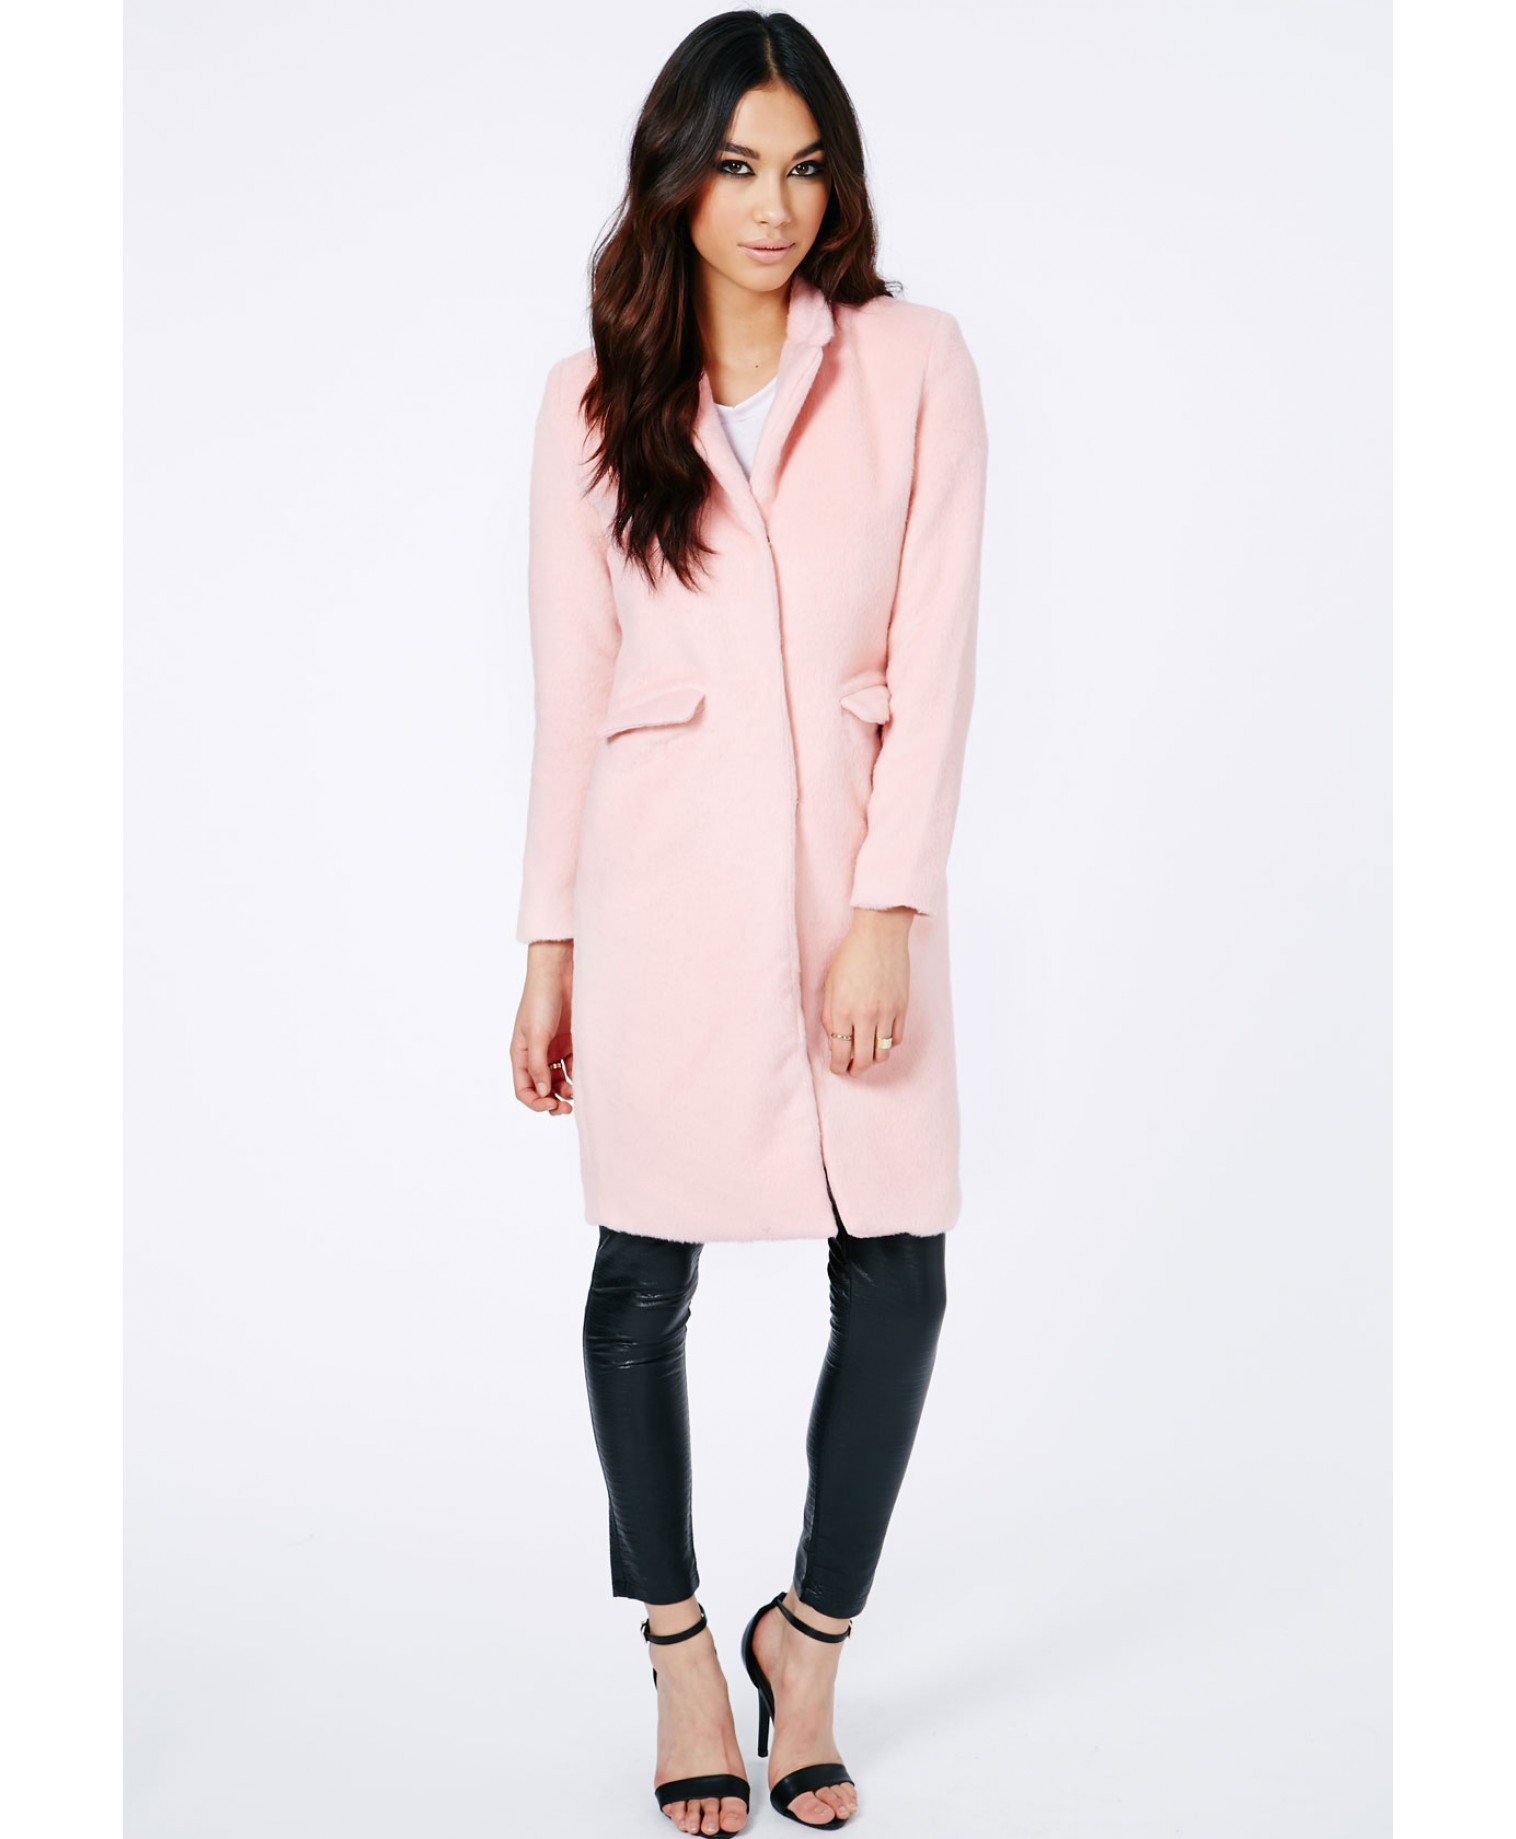 Missguided Hether Textured Tailored Boyfriend Coat in Baby Pink in ...